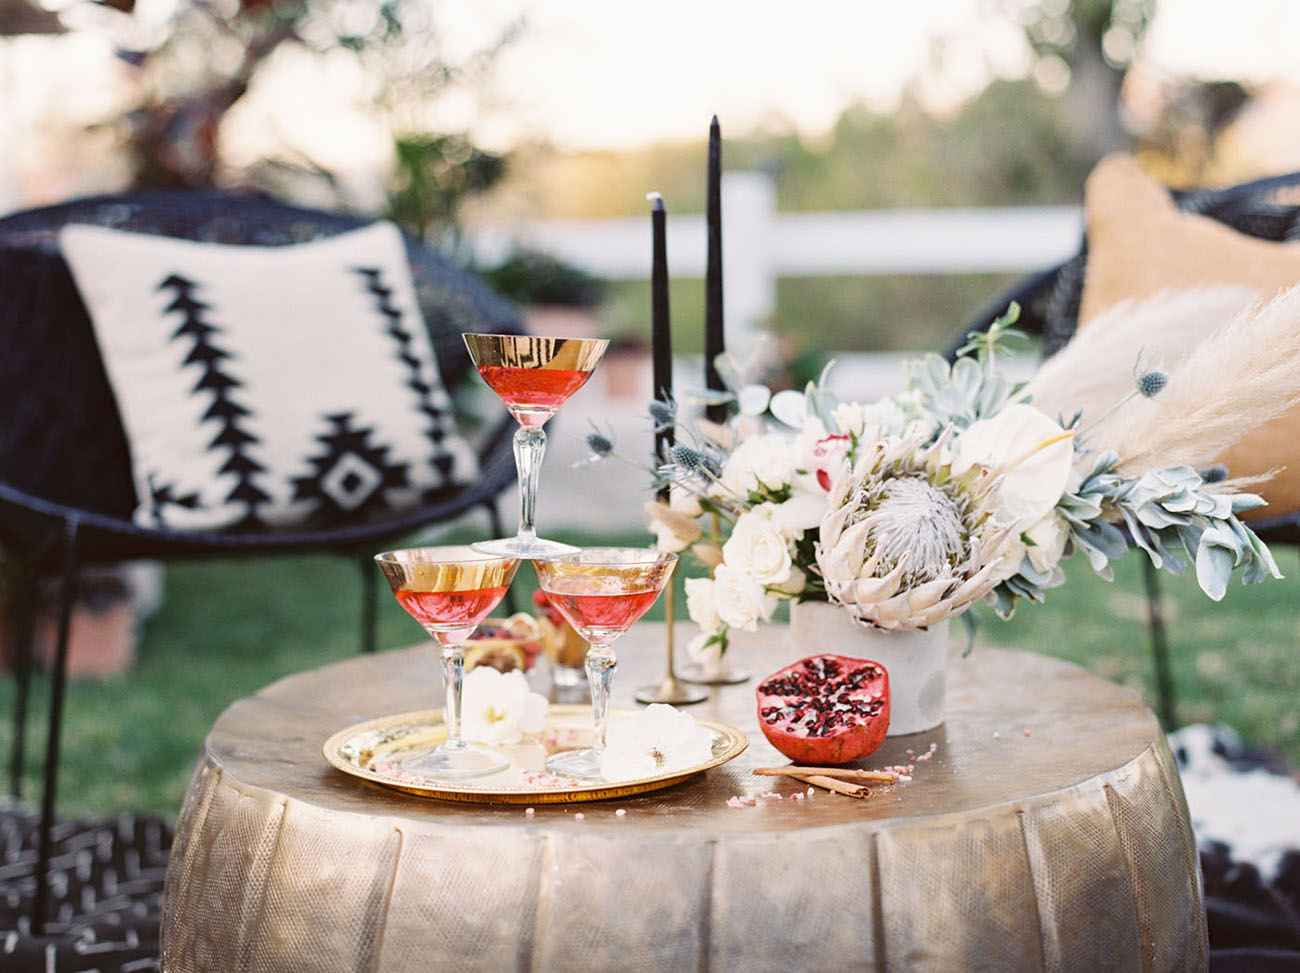 The Tyspy Gypsy Wandering Bar Wedding Inspiration